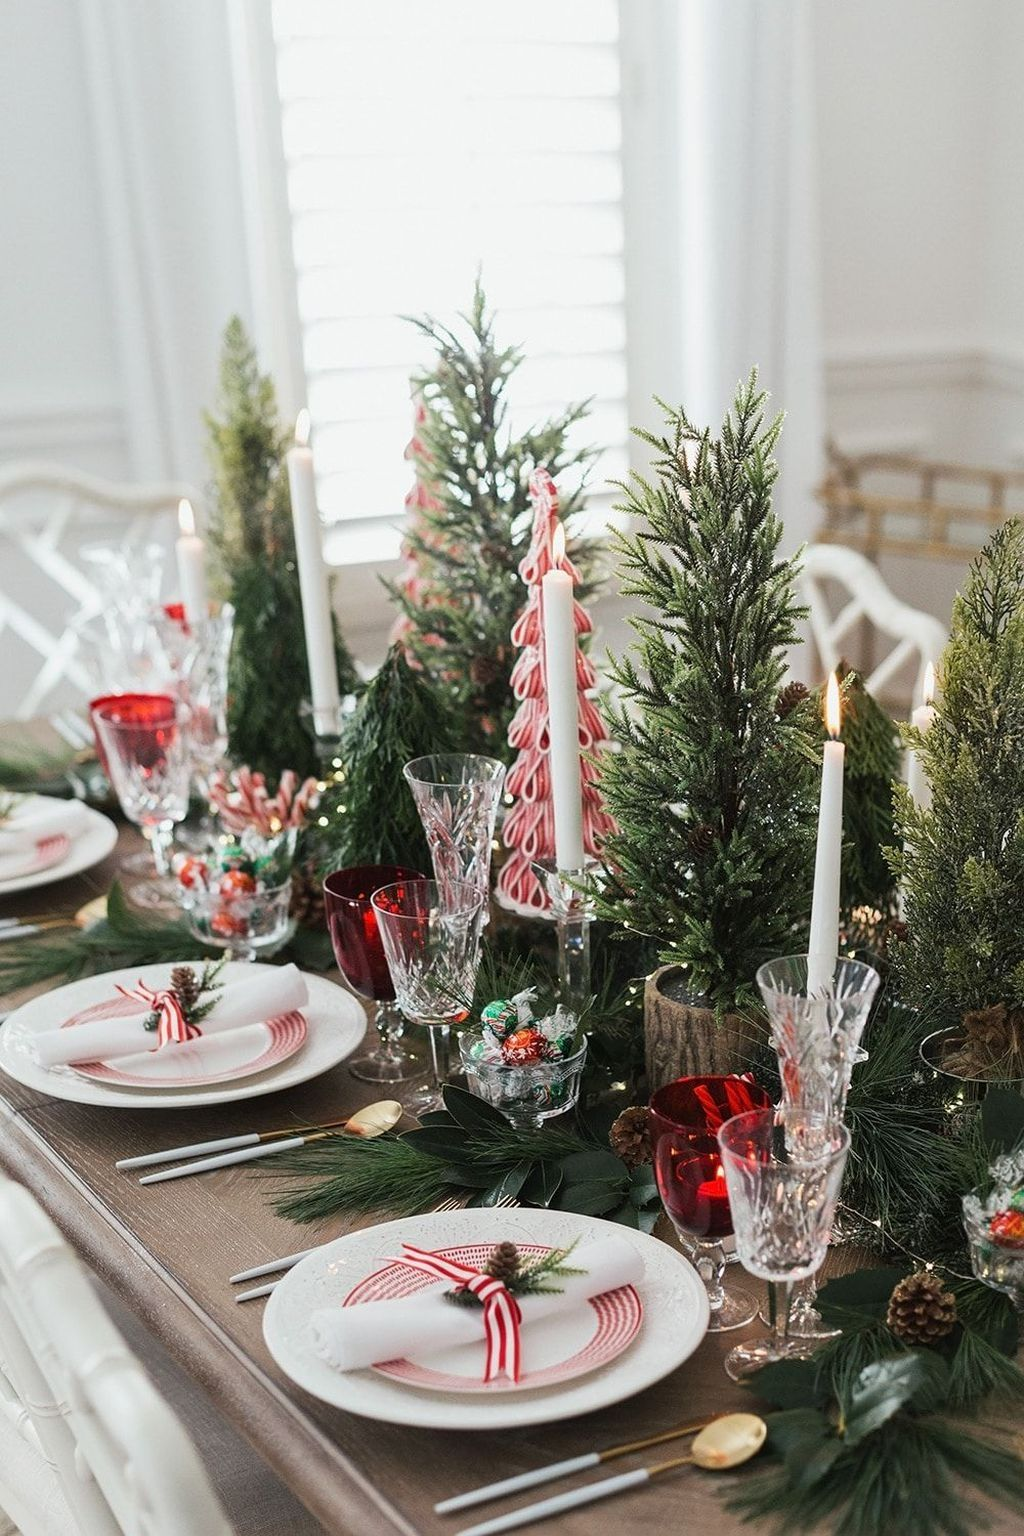 30 Fabulous Christmas Decor Ideas To Elevate Your Dining Table Christmas Decorations Cheap Christmas Table Decorations Christmas Table Settings